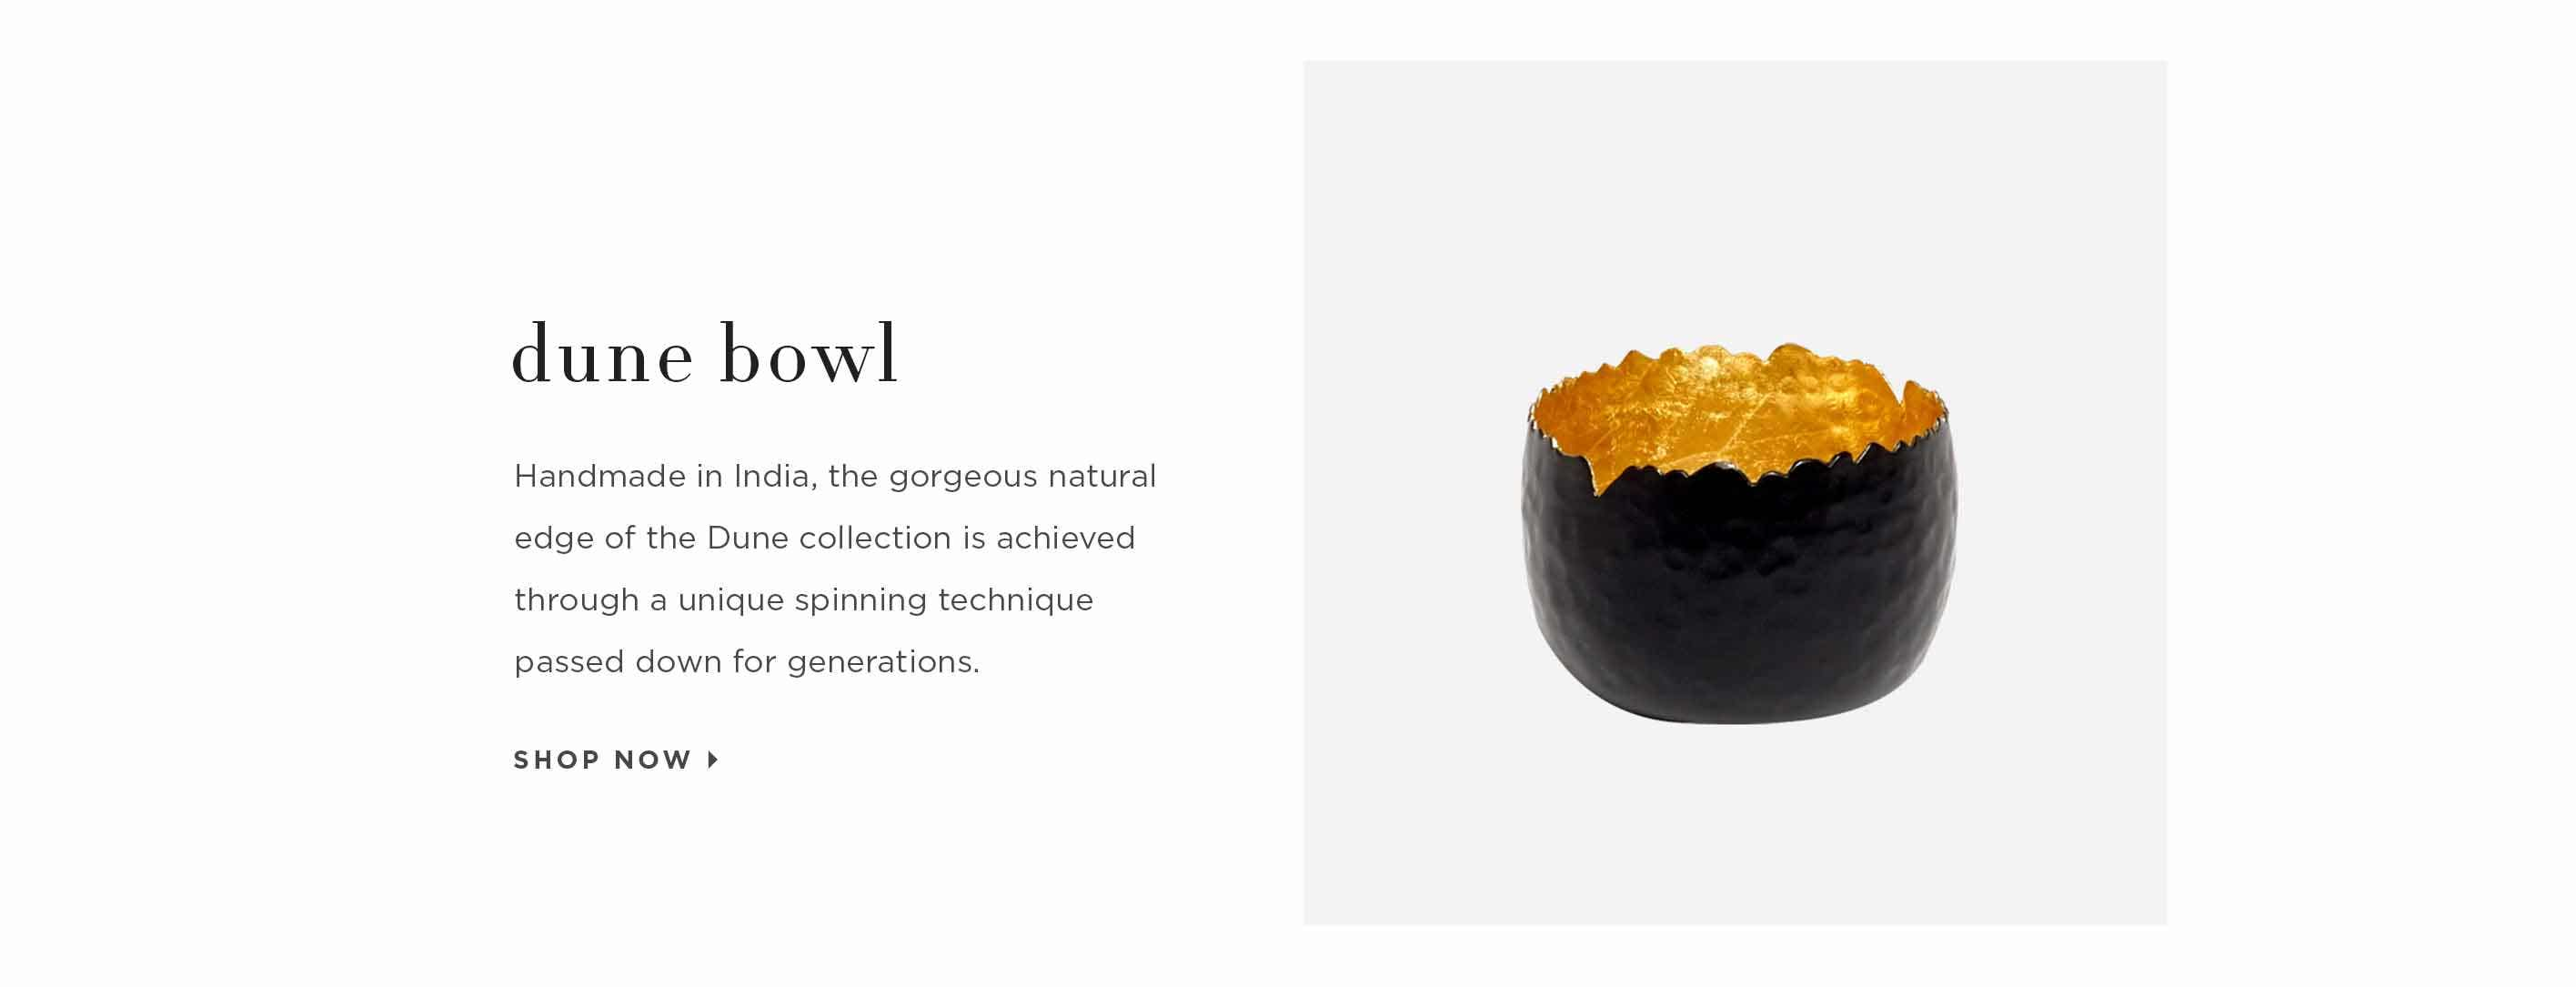 Dune Bowl - Handmade in India, the gorgeous natural edge of the Dune collection is achieved through a unique spinning technique passed down for generations. Shop now.